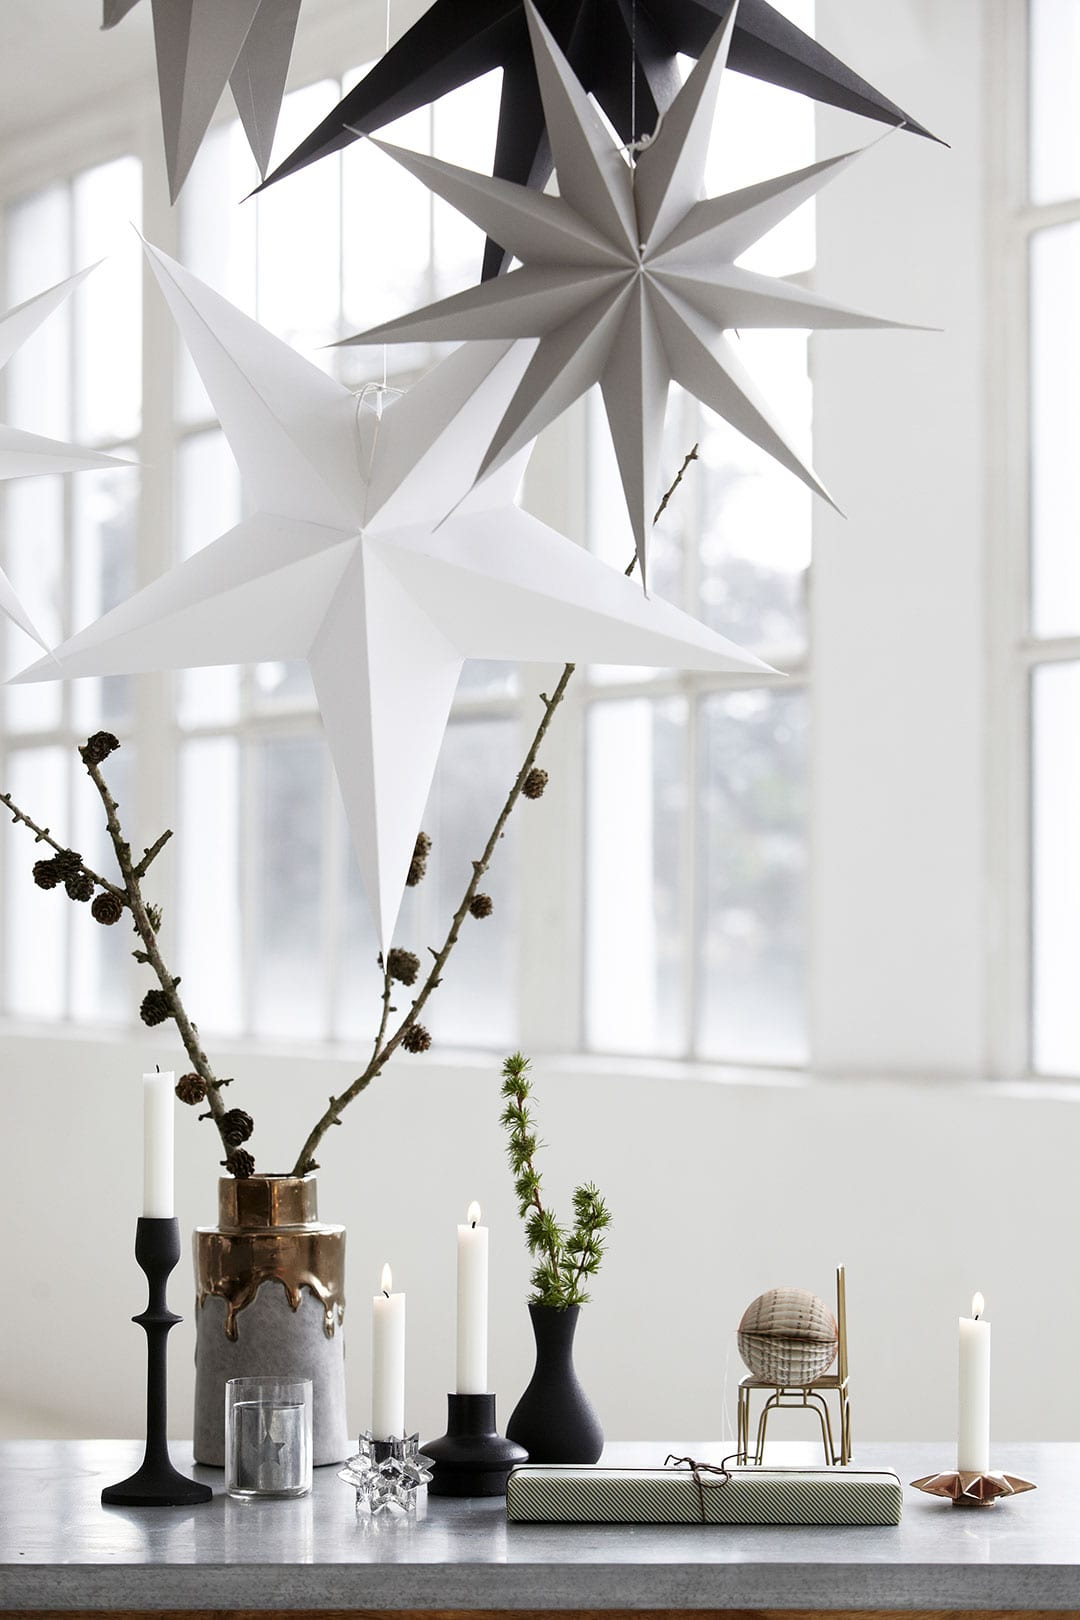 Minimalist christmas decorations style minimalism for 500 decoration details minimalism